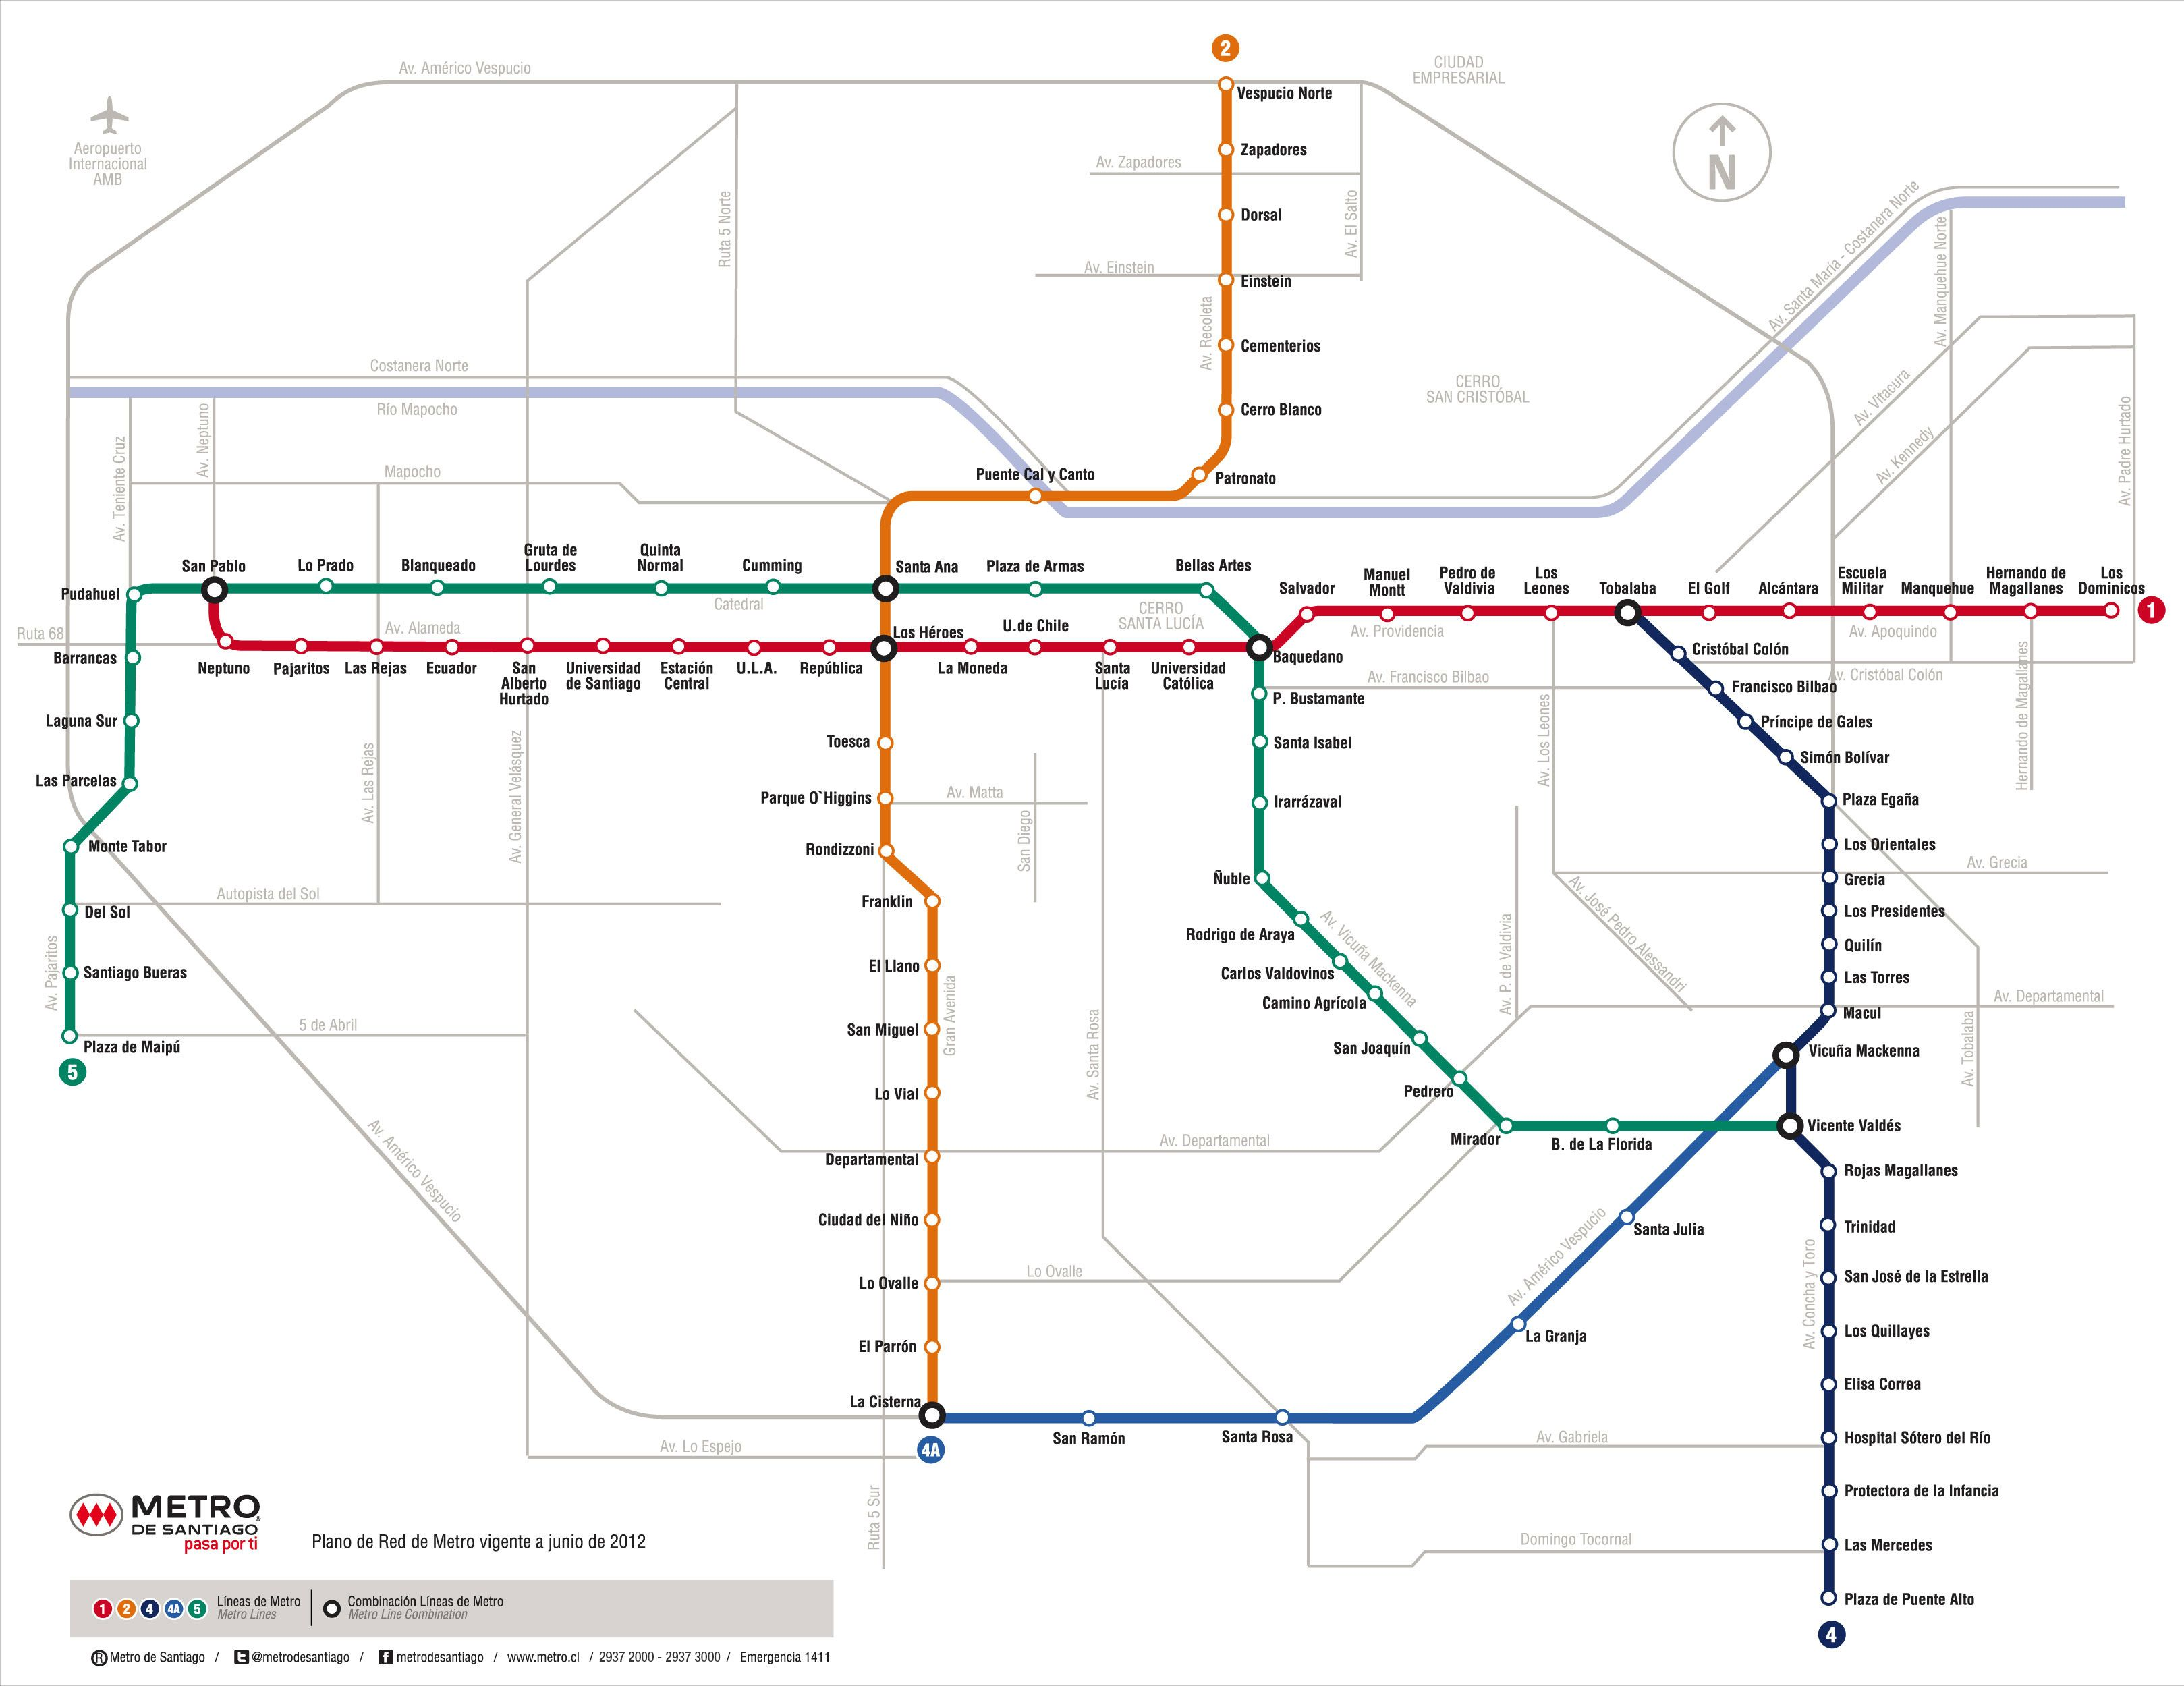 Argentina Subway Map.Santiago Metro Map Rappa Nui Easter Island Trip Of A Lifetime